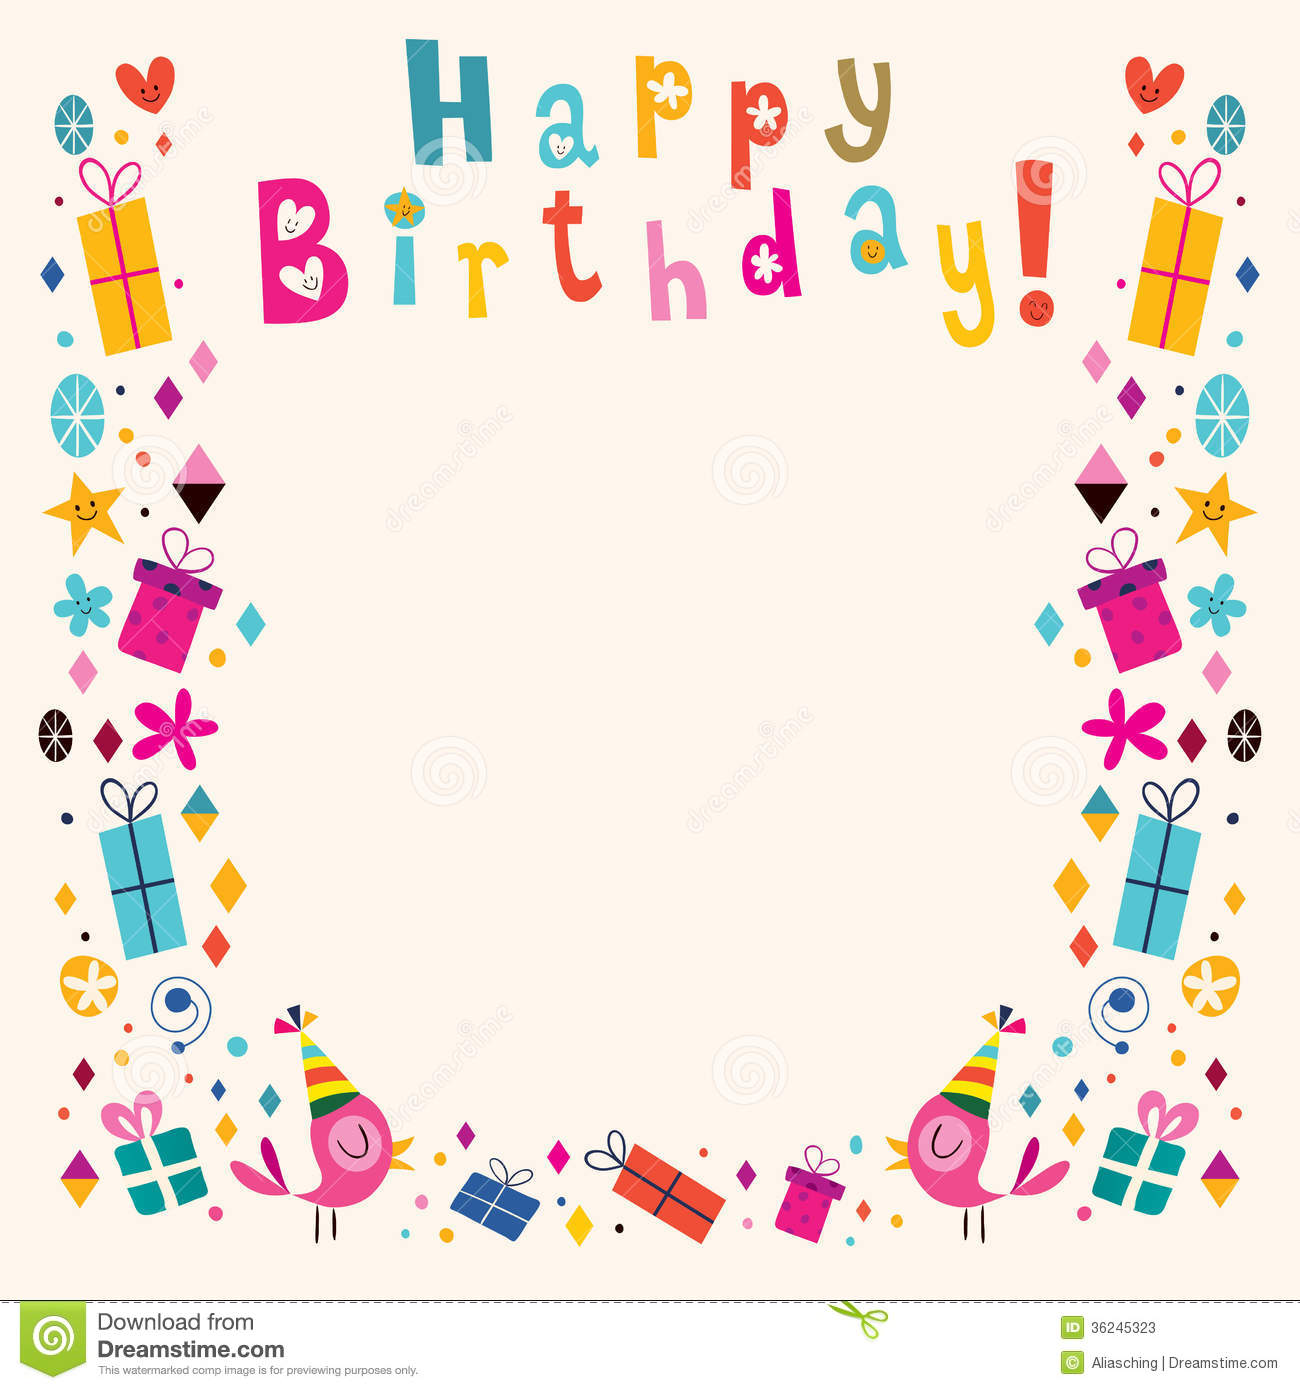 Happy Birthday Borders Clipart - Clipart Suggest